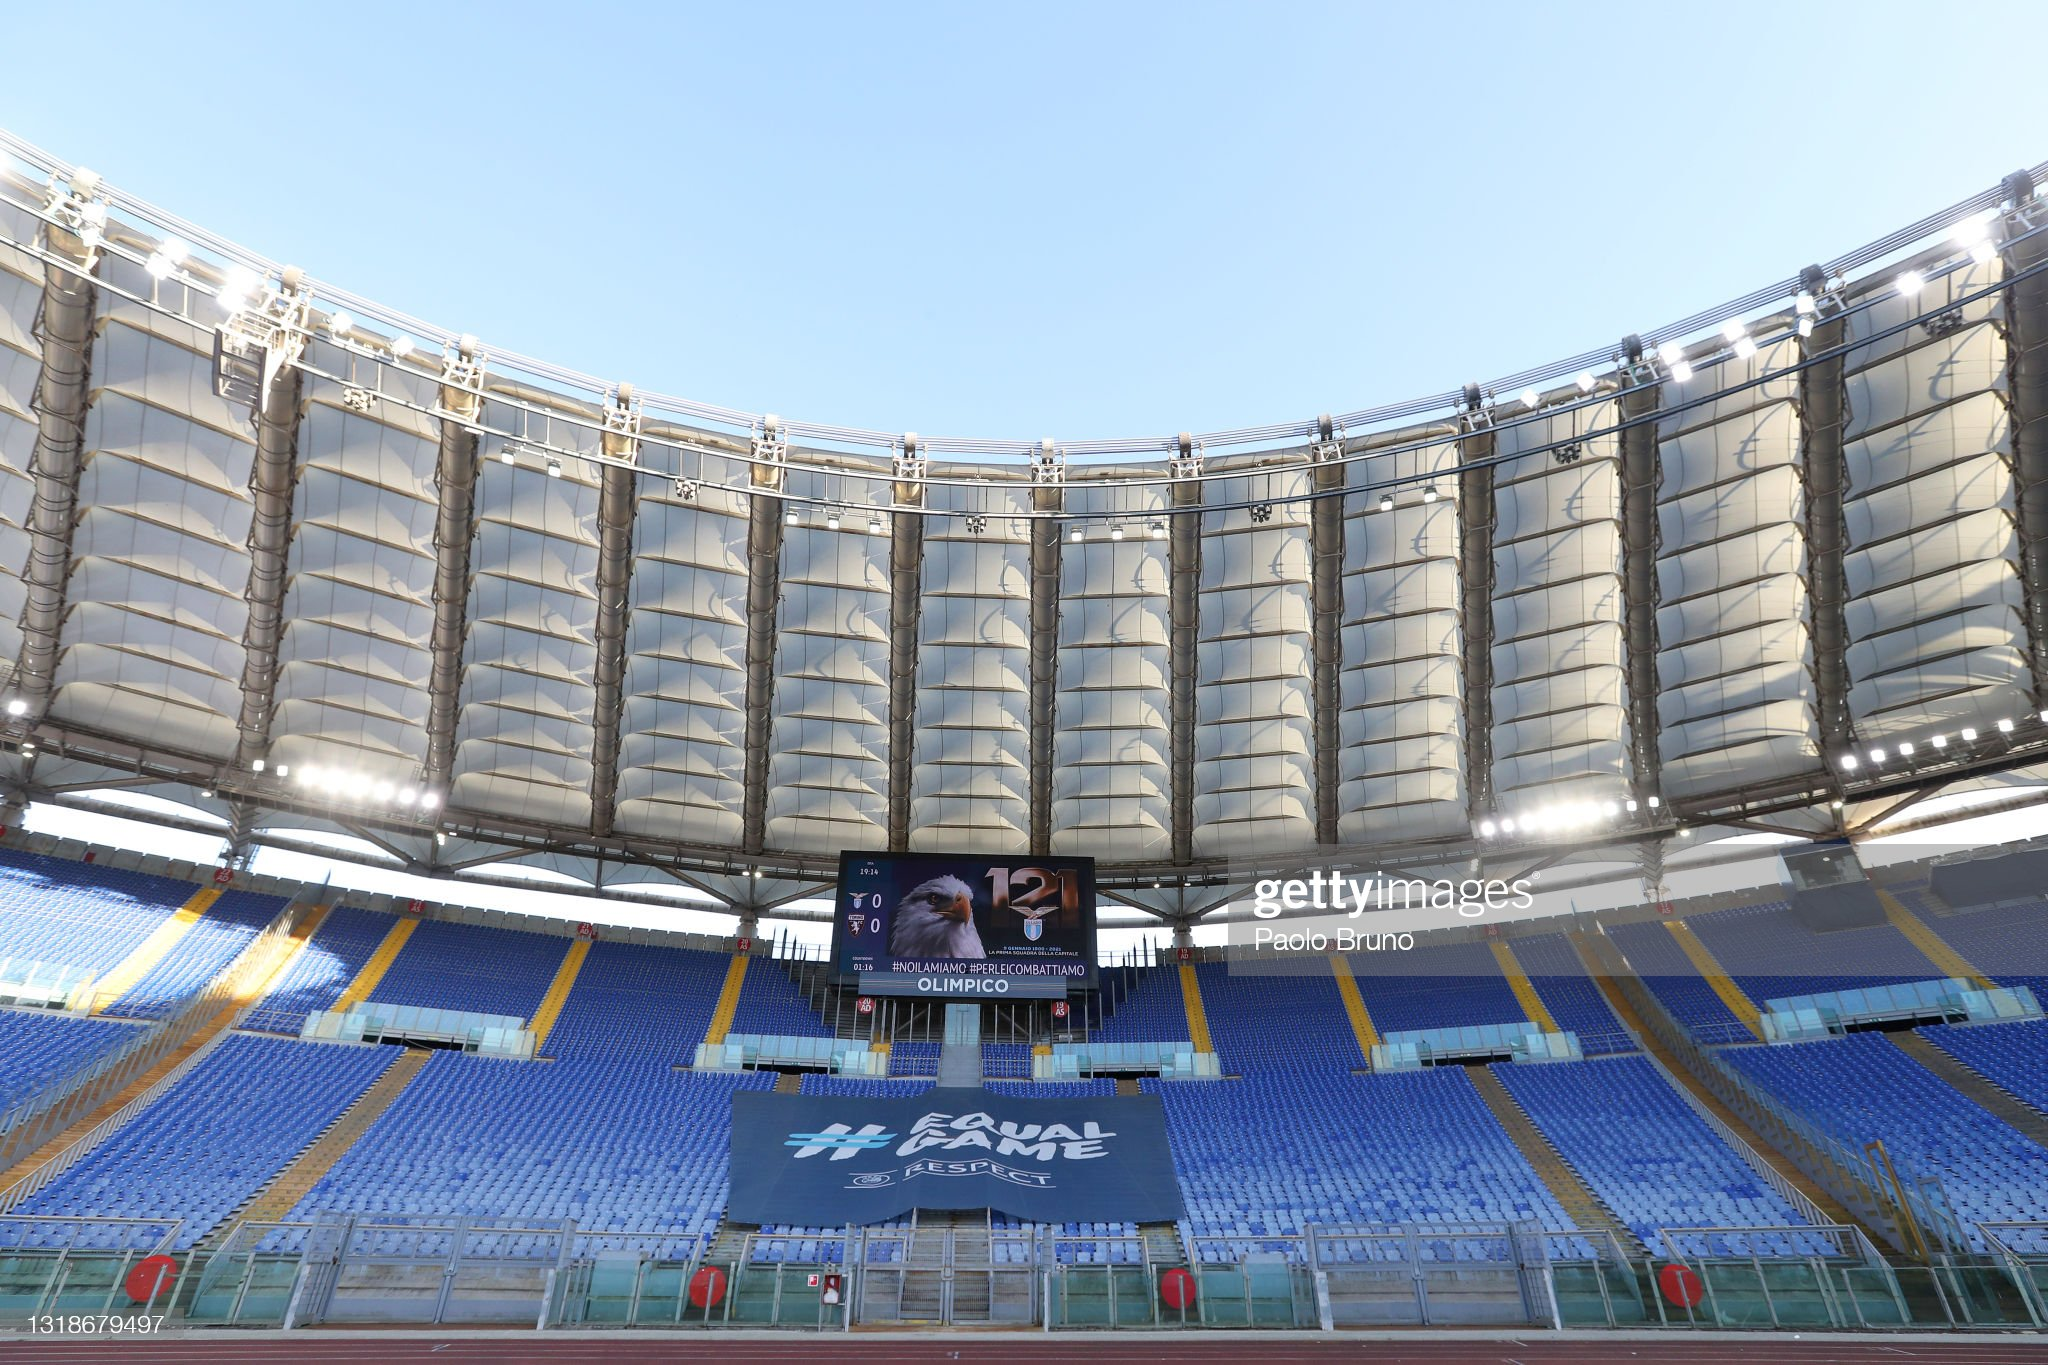 Turkey vs Italy Preview, prediction and odds